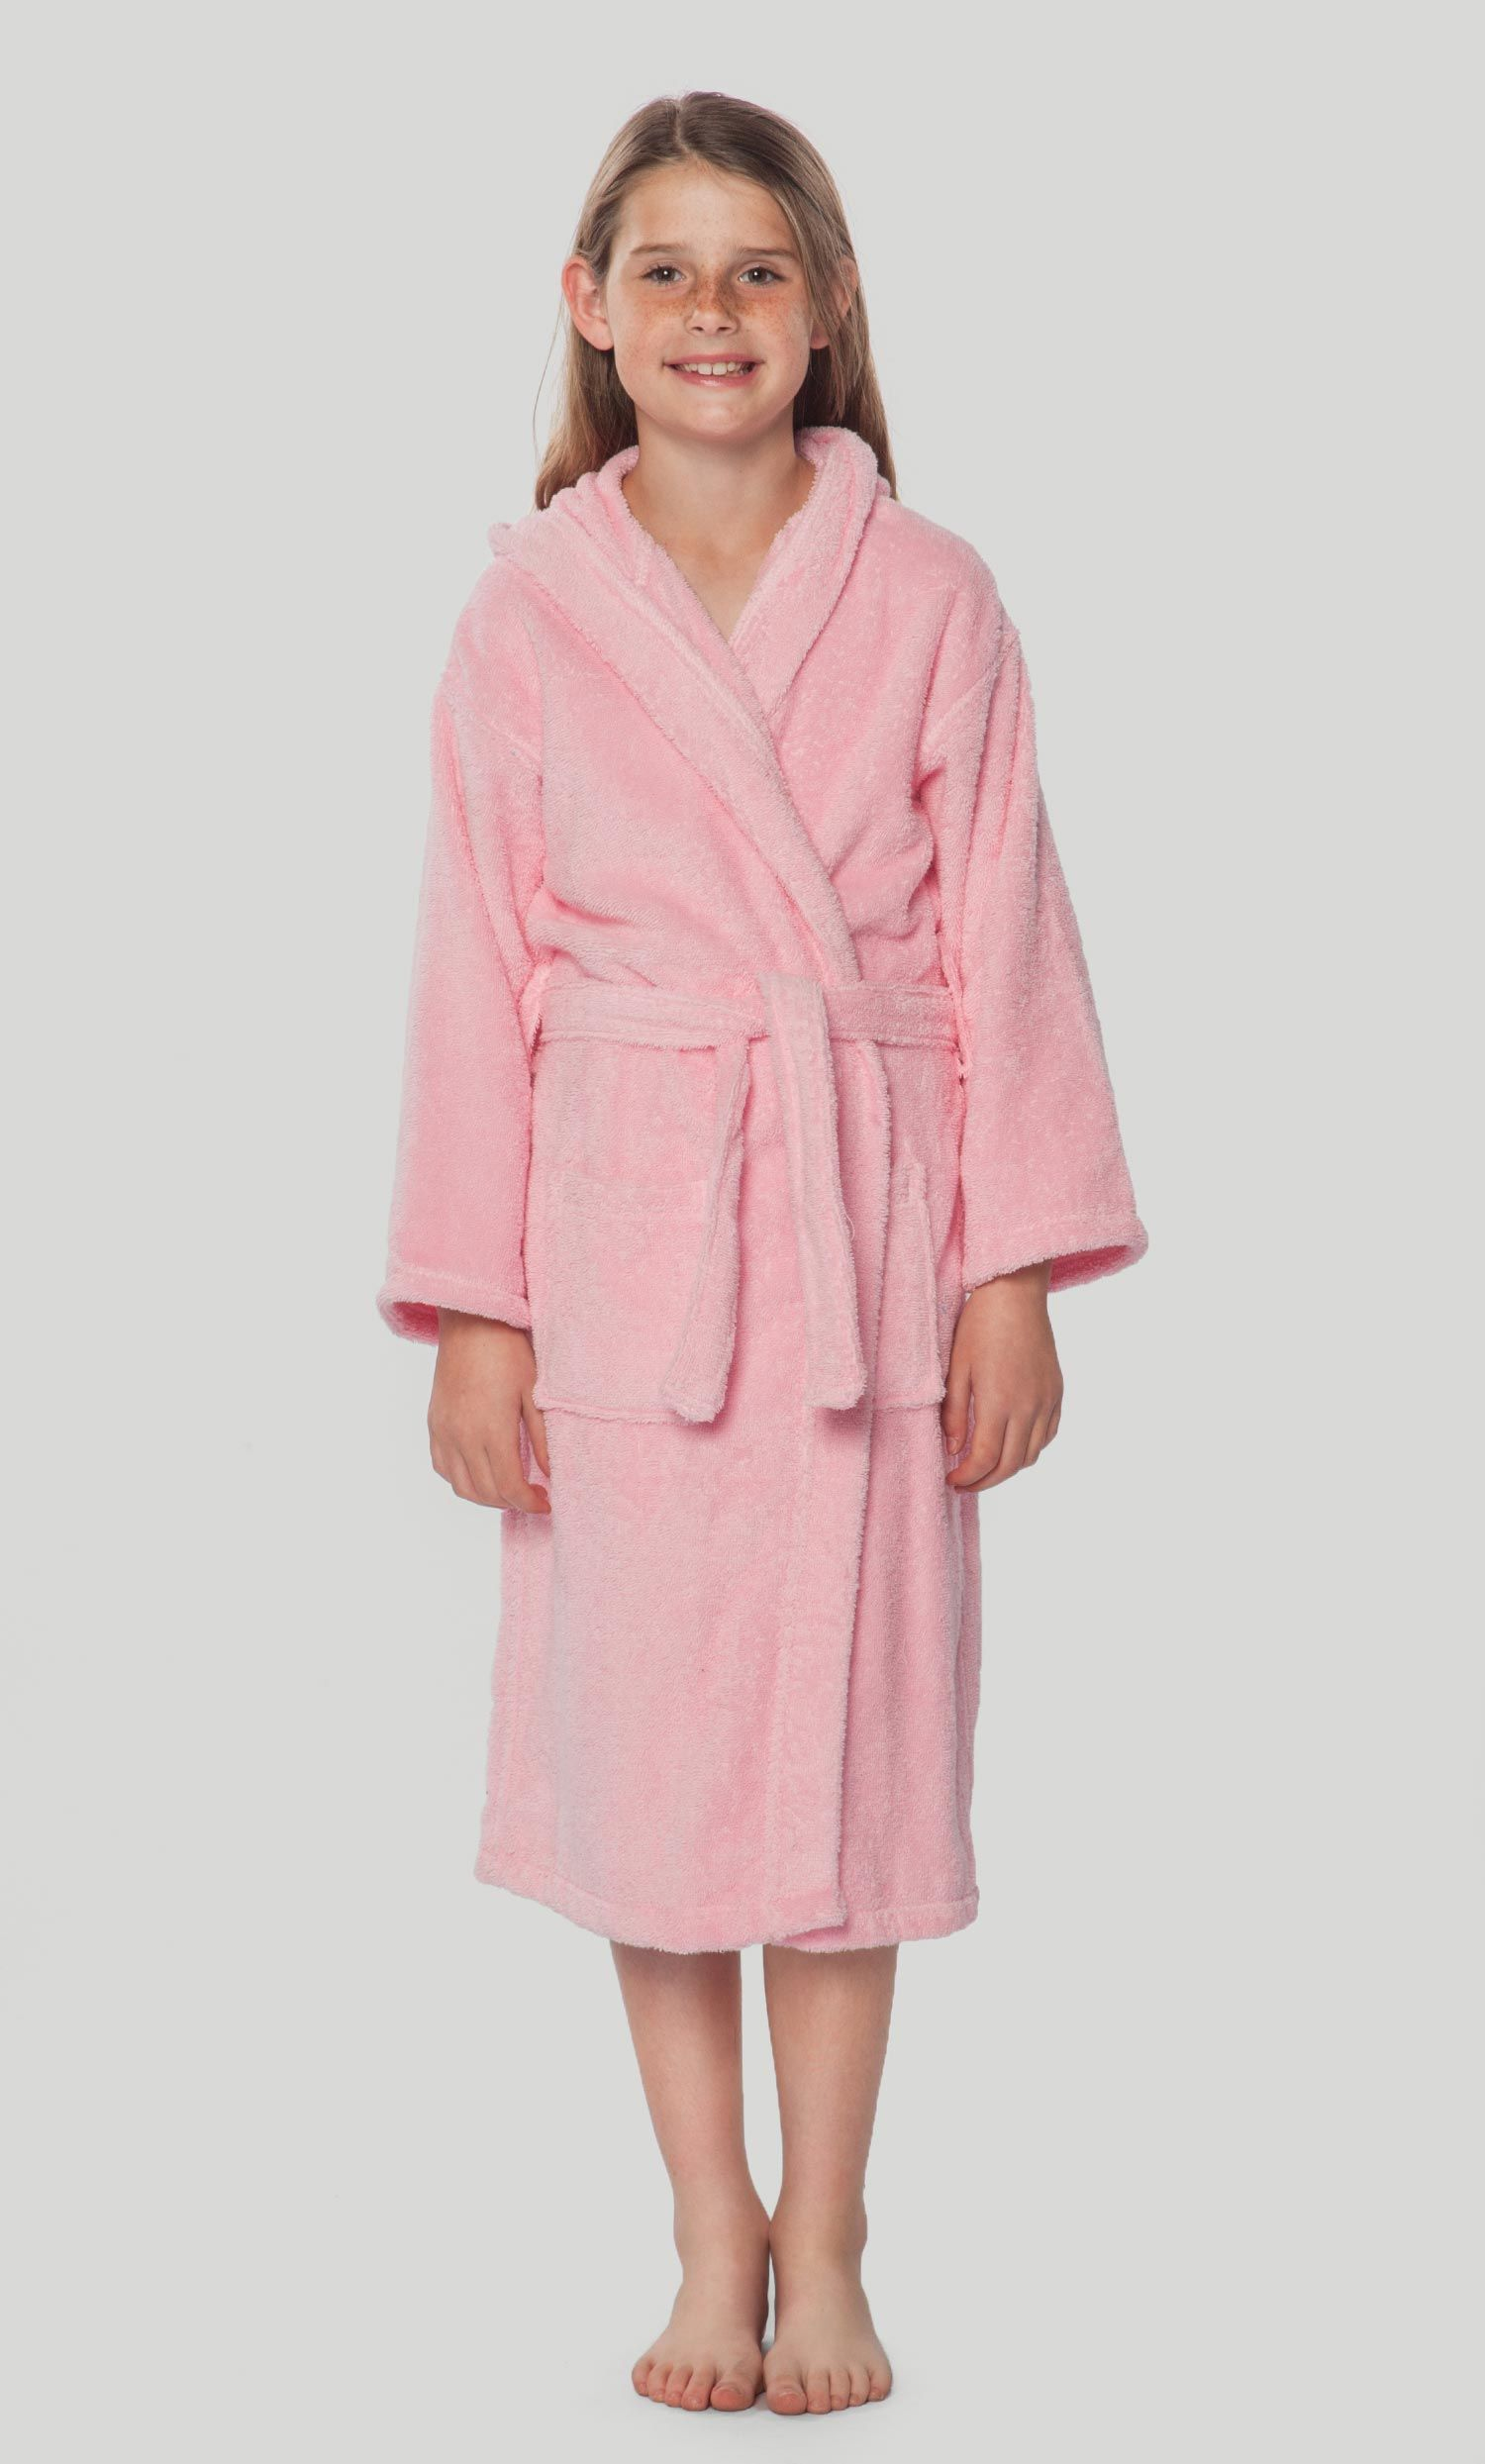 92b159c370 Kids Bathrobes    Terry Kids Hooded Bathrobes    100% Turkish Cotton Pink  Hooded Terry Kid s Bathrobe - Wholesale bathrobes